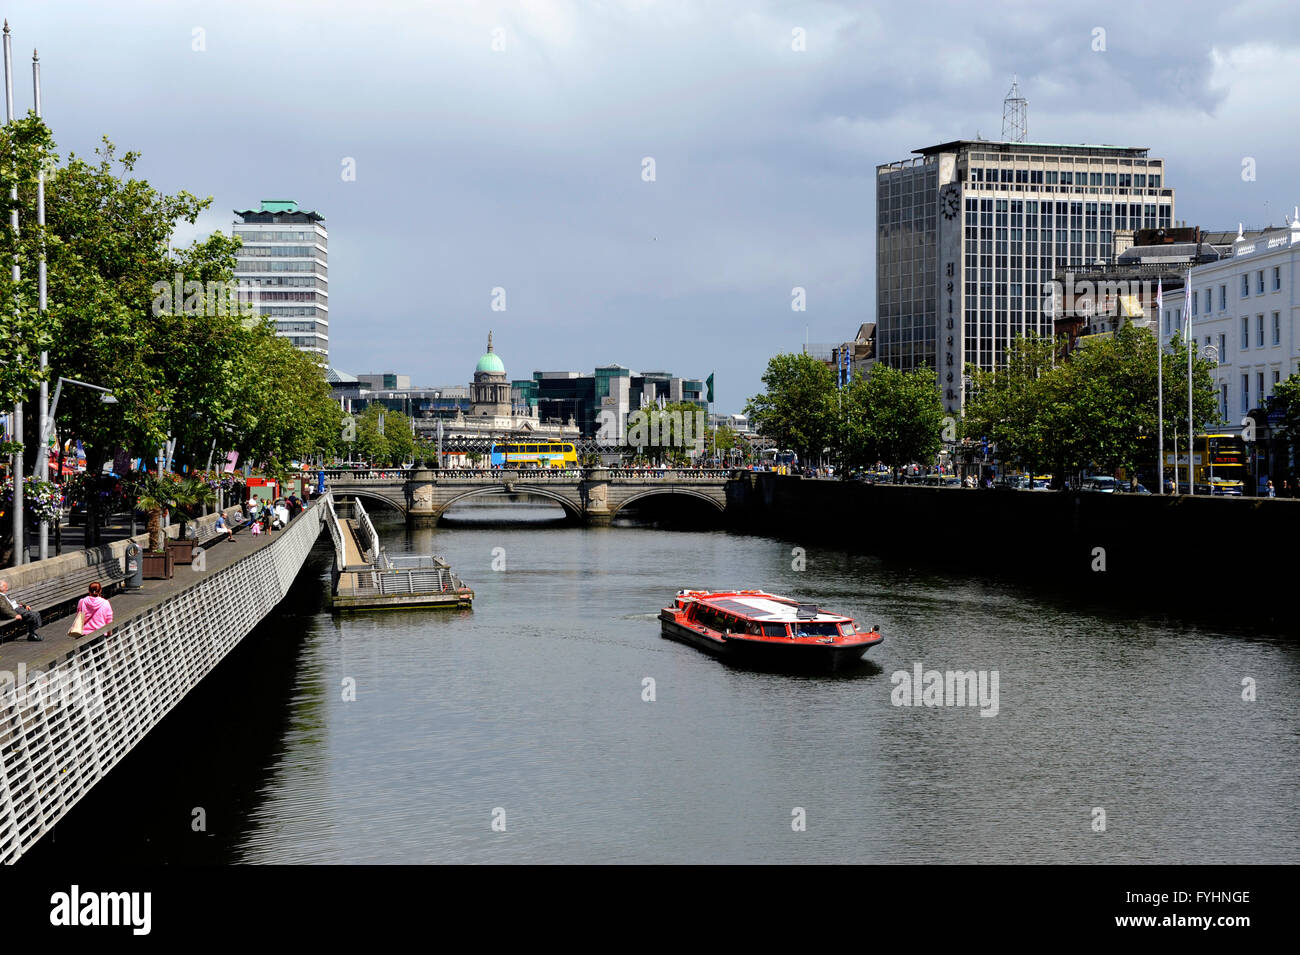 Boat tour on the Liffey river, O'Connell bridge and the Custom house, Dublin, Ireland Stock Photo